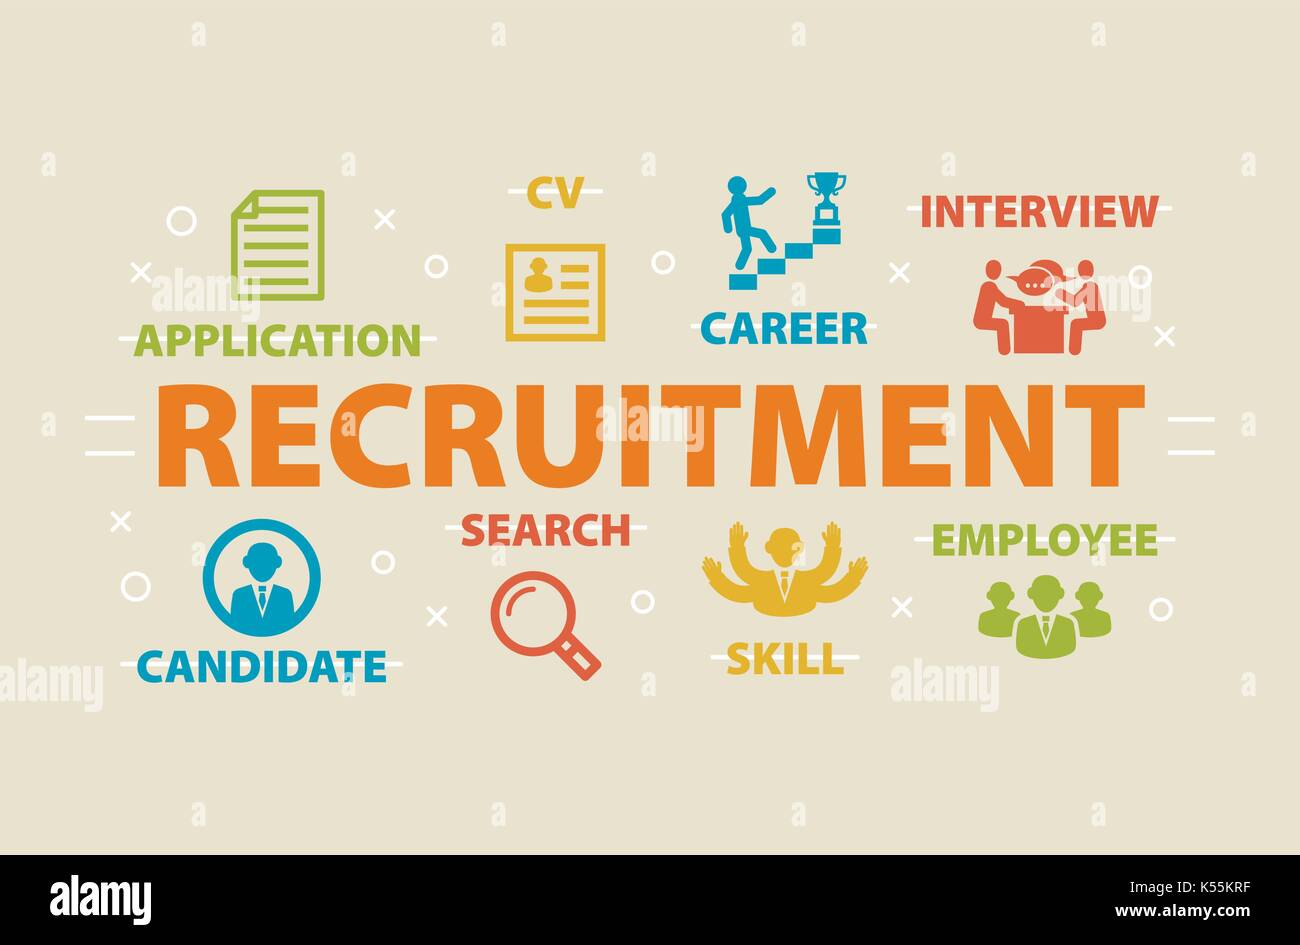 RECRUITMENT Concept with icons - Stock Vector